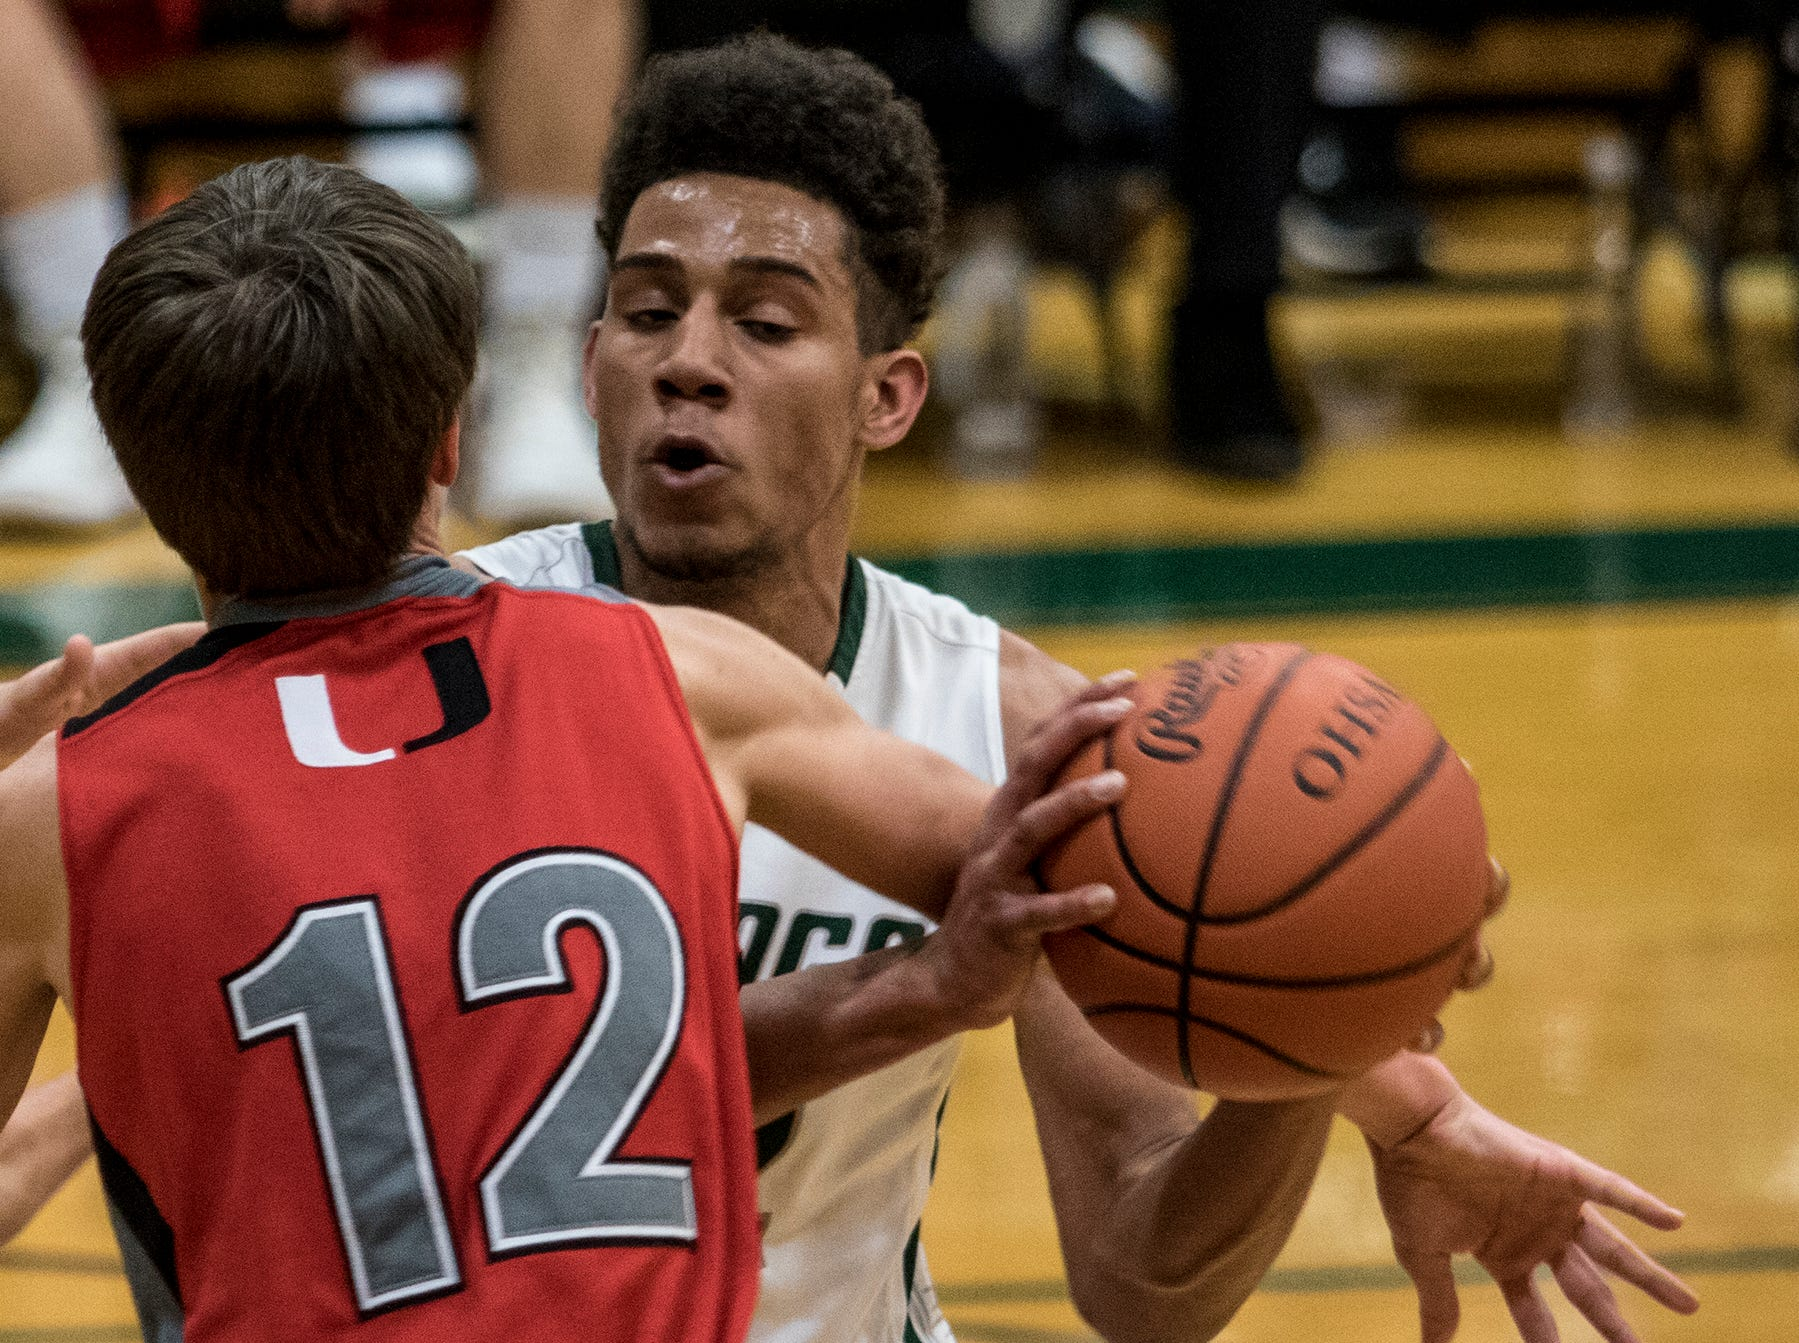 Northridge hosted Utica in an LCL game Wednesday night. The Vikings took the win over the Redskins 40-32.